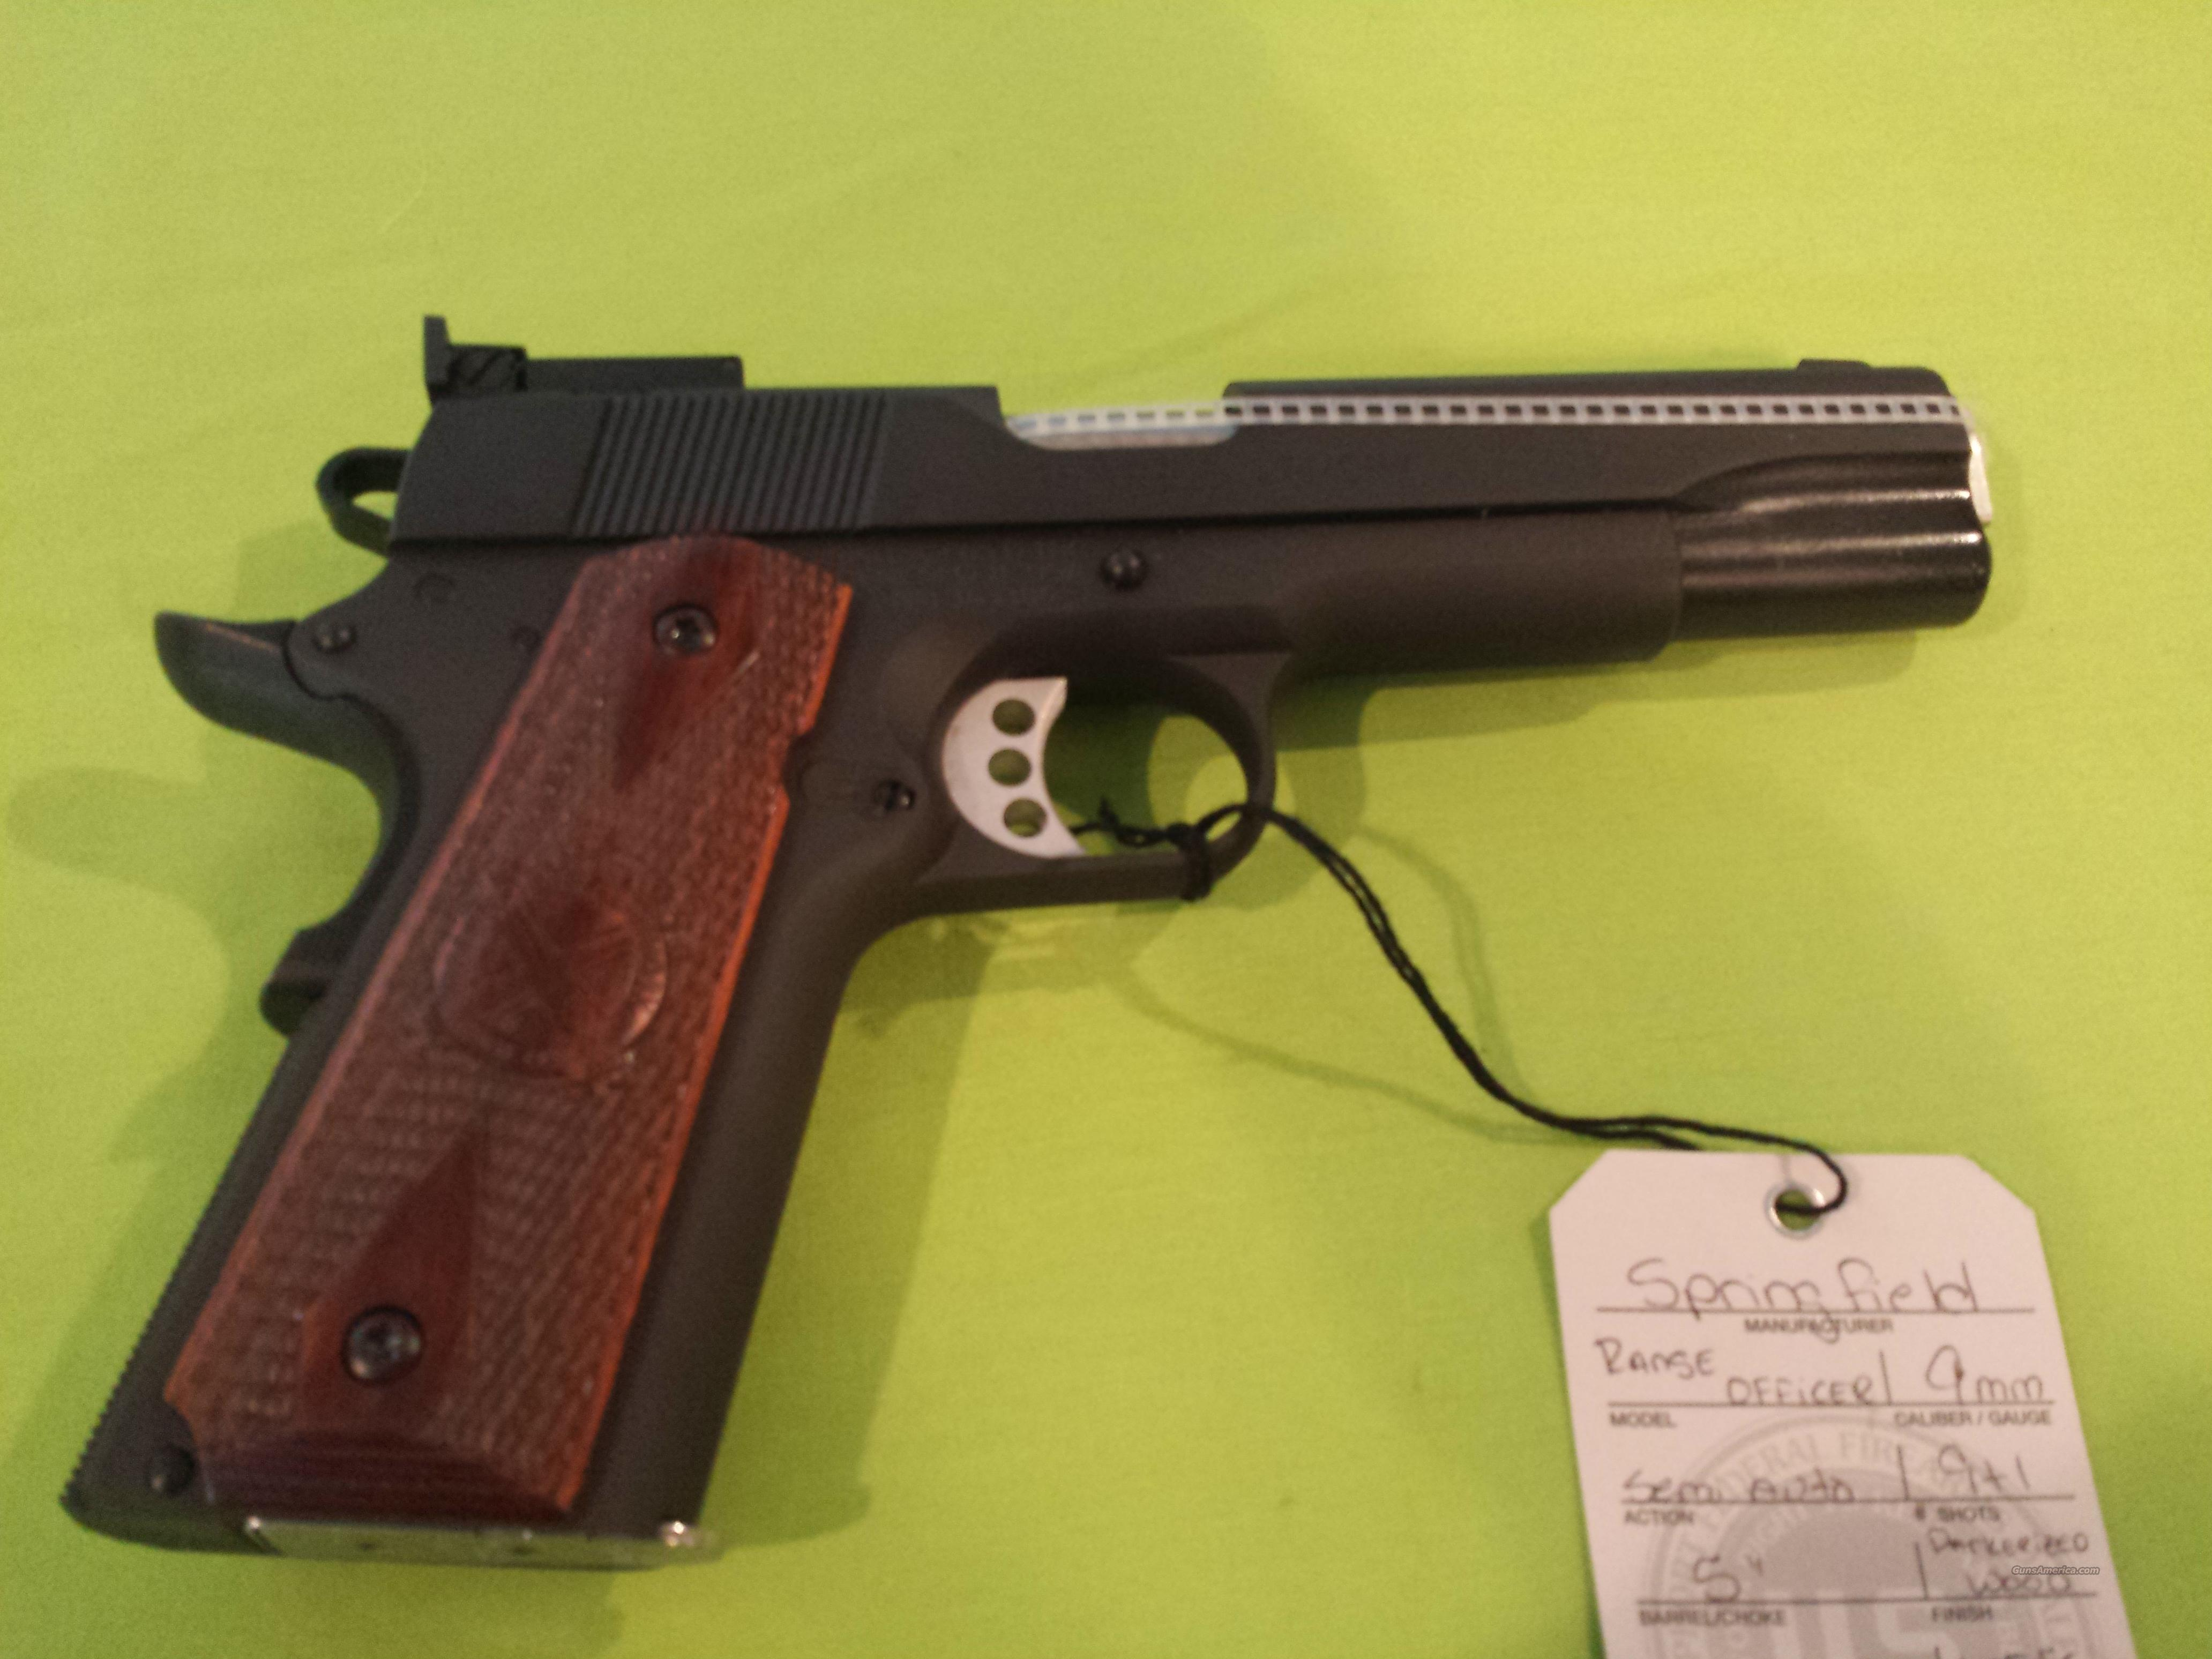 SPRINGFIELD 1911 RANGE OFFICER 9mm 9RD 9 PARKERIZED  Guns > Pistols > Springfield Armory Pistols > 1911 Type